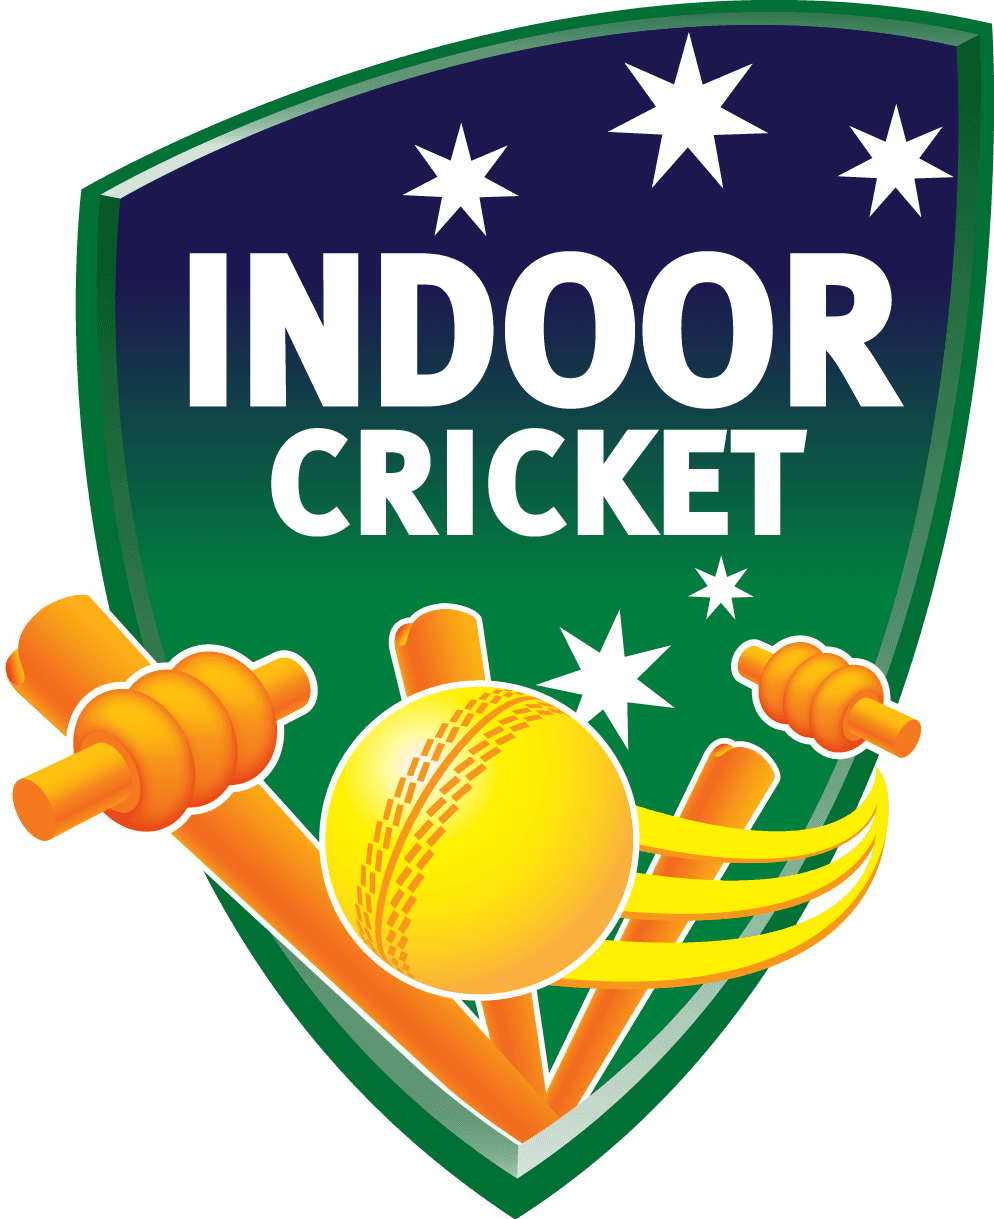 Indoor Cricket at Port Macquarie.